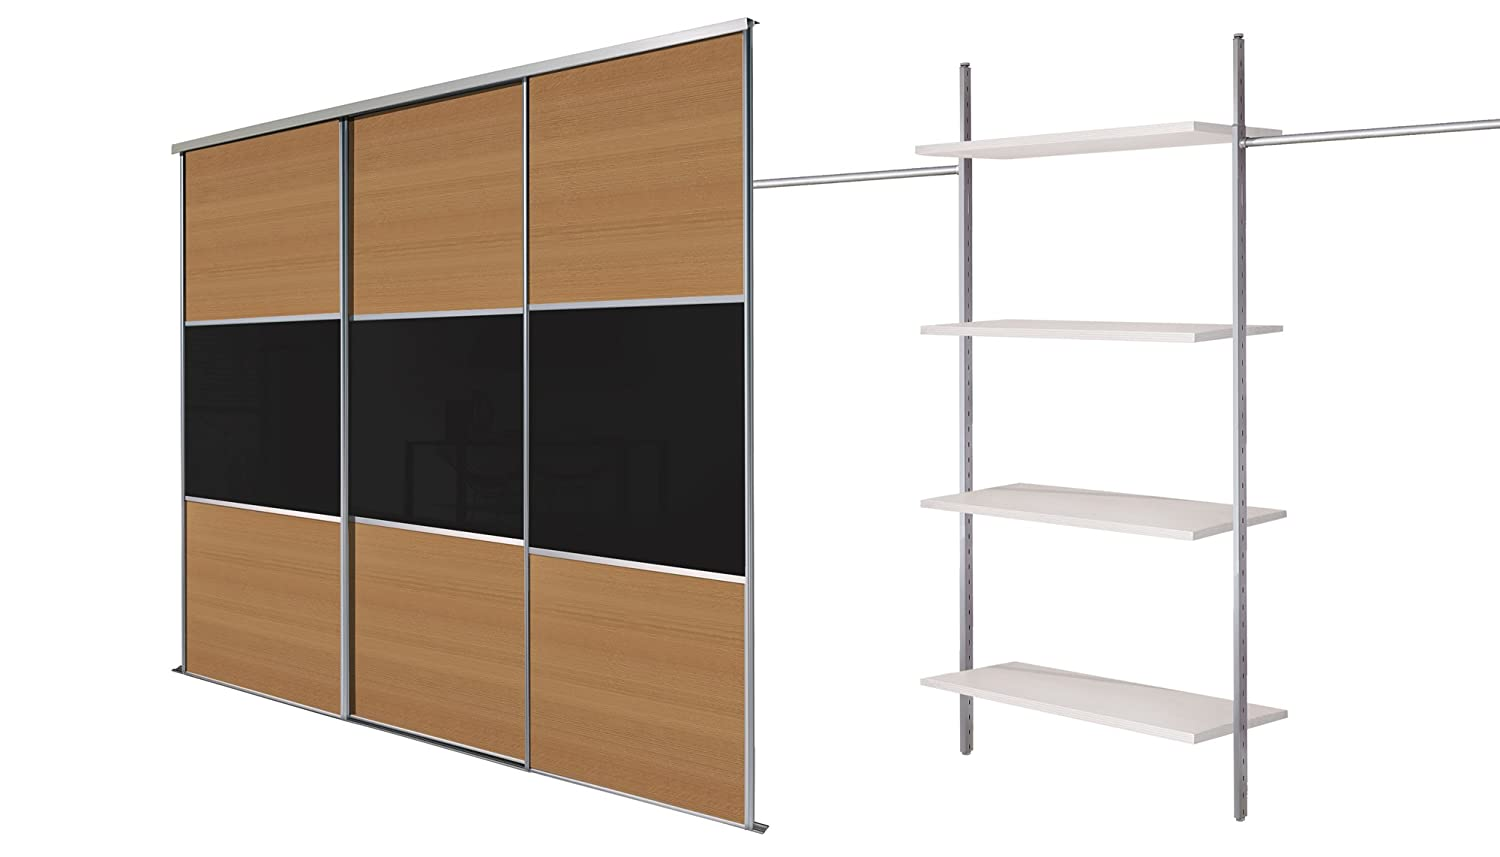 Silver framed wide. Triple 8ft 10ins 4 Panel Sliding Wardrobe Door Kit up to 2692mm SpacePro White Lacquered Glass